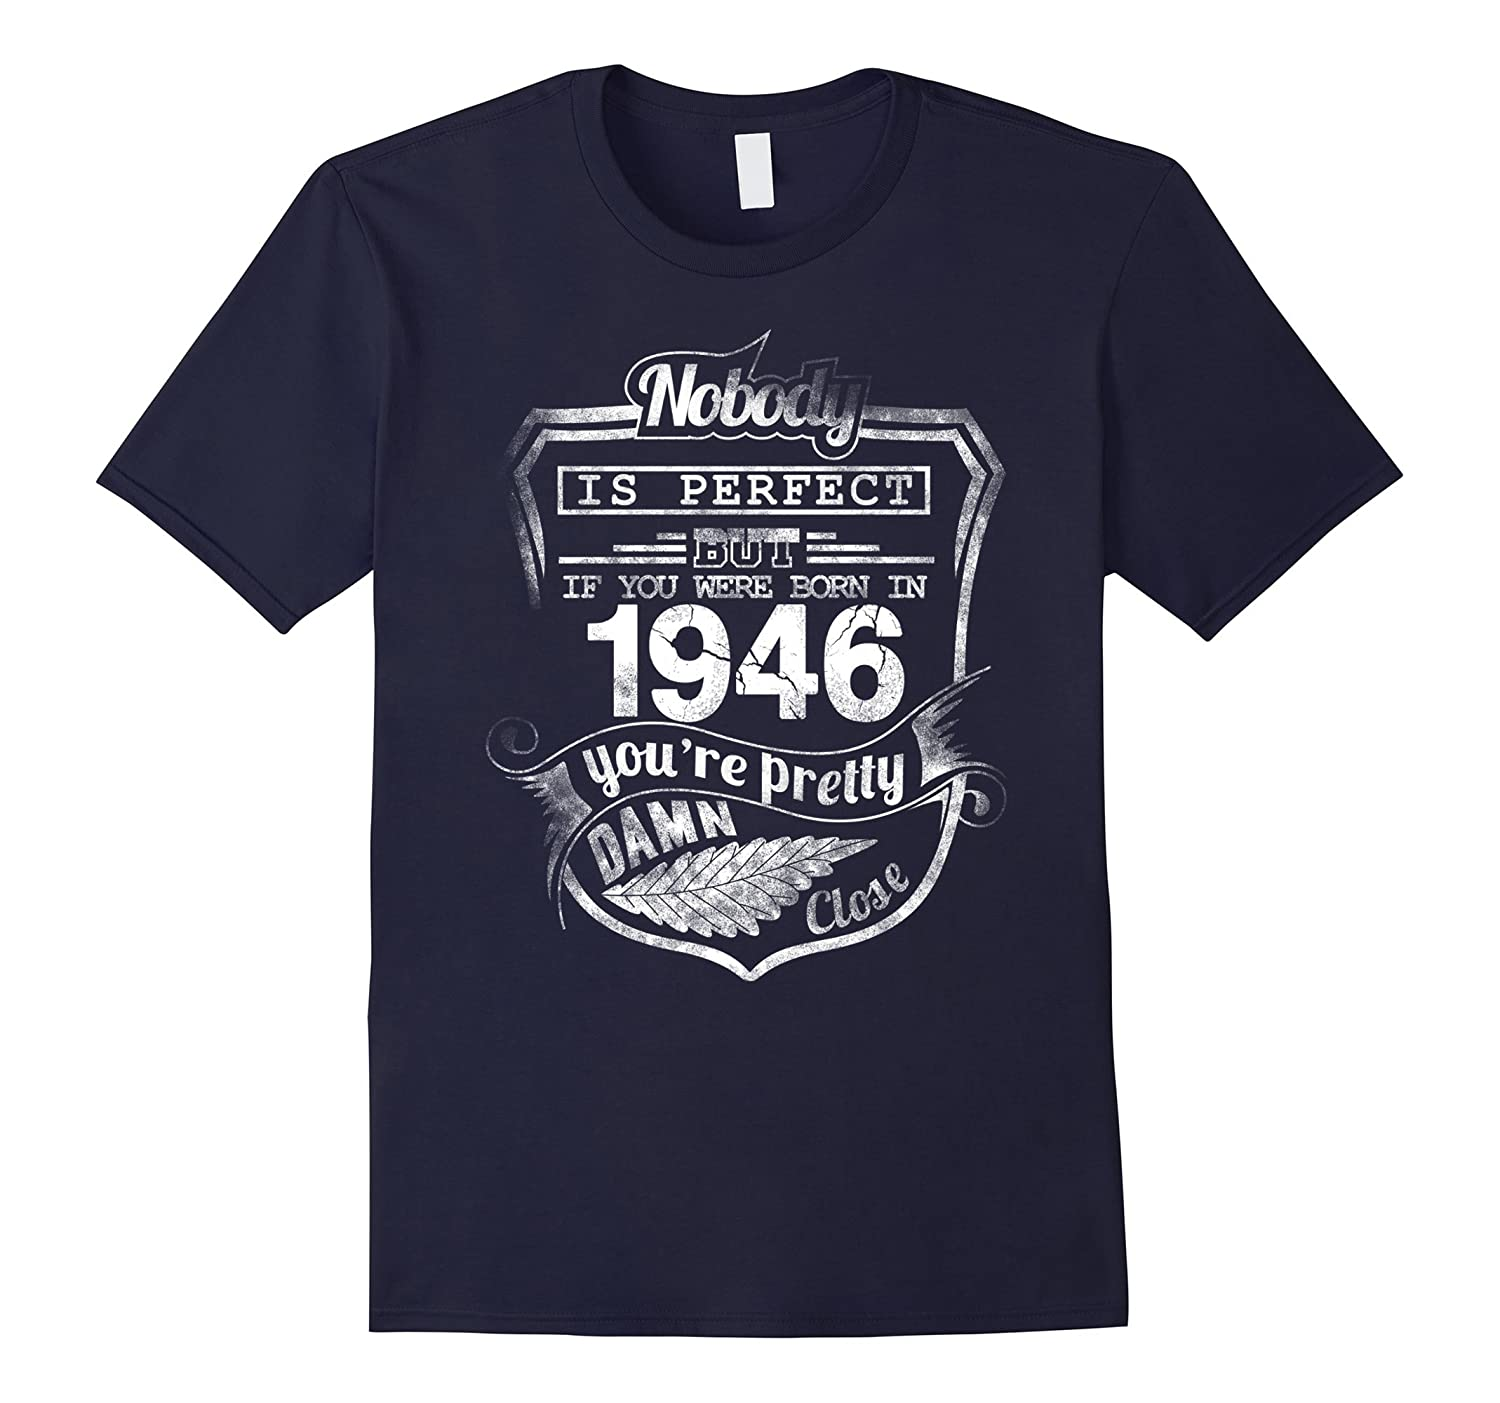 Born in 1946 T-shirt - hot trend birthday gift-CL